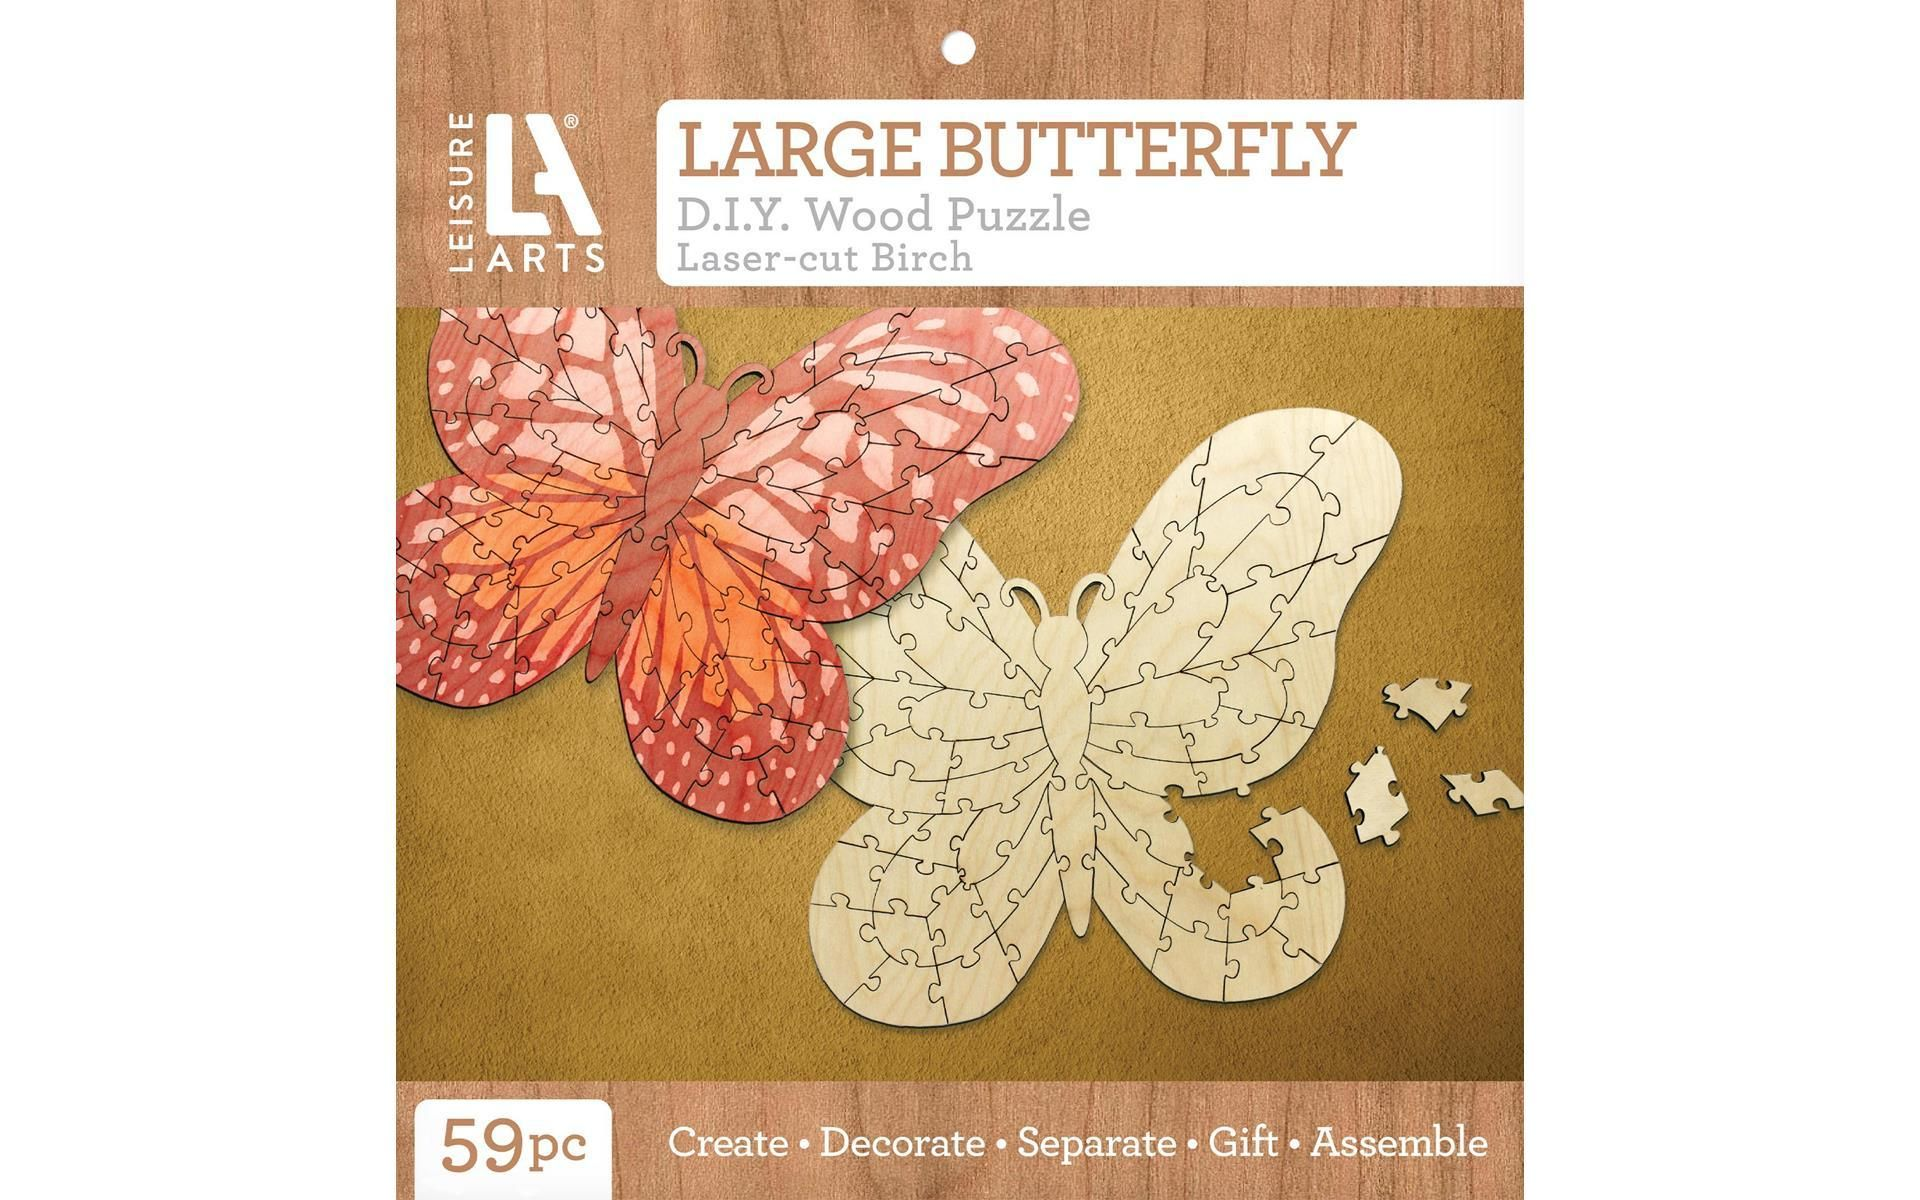 Leisure Arts Wood Puzzle Large Butterfly